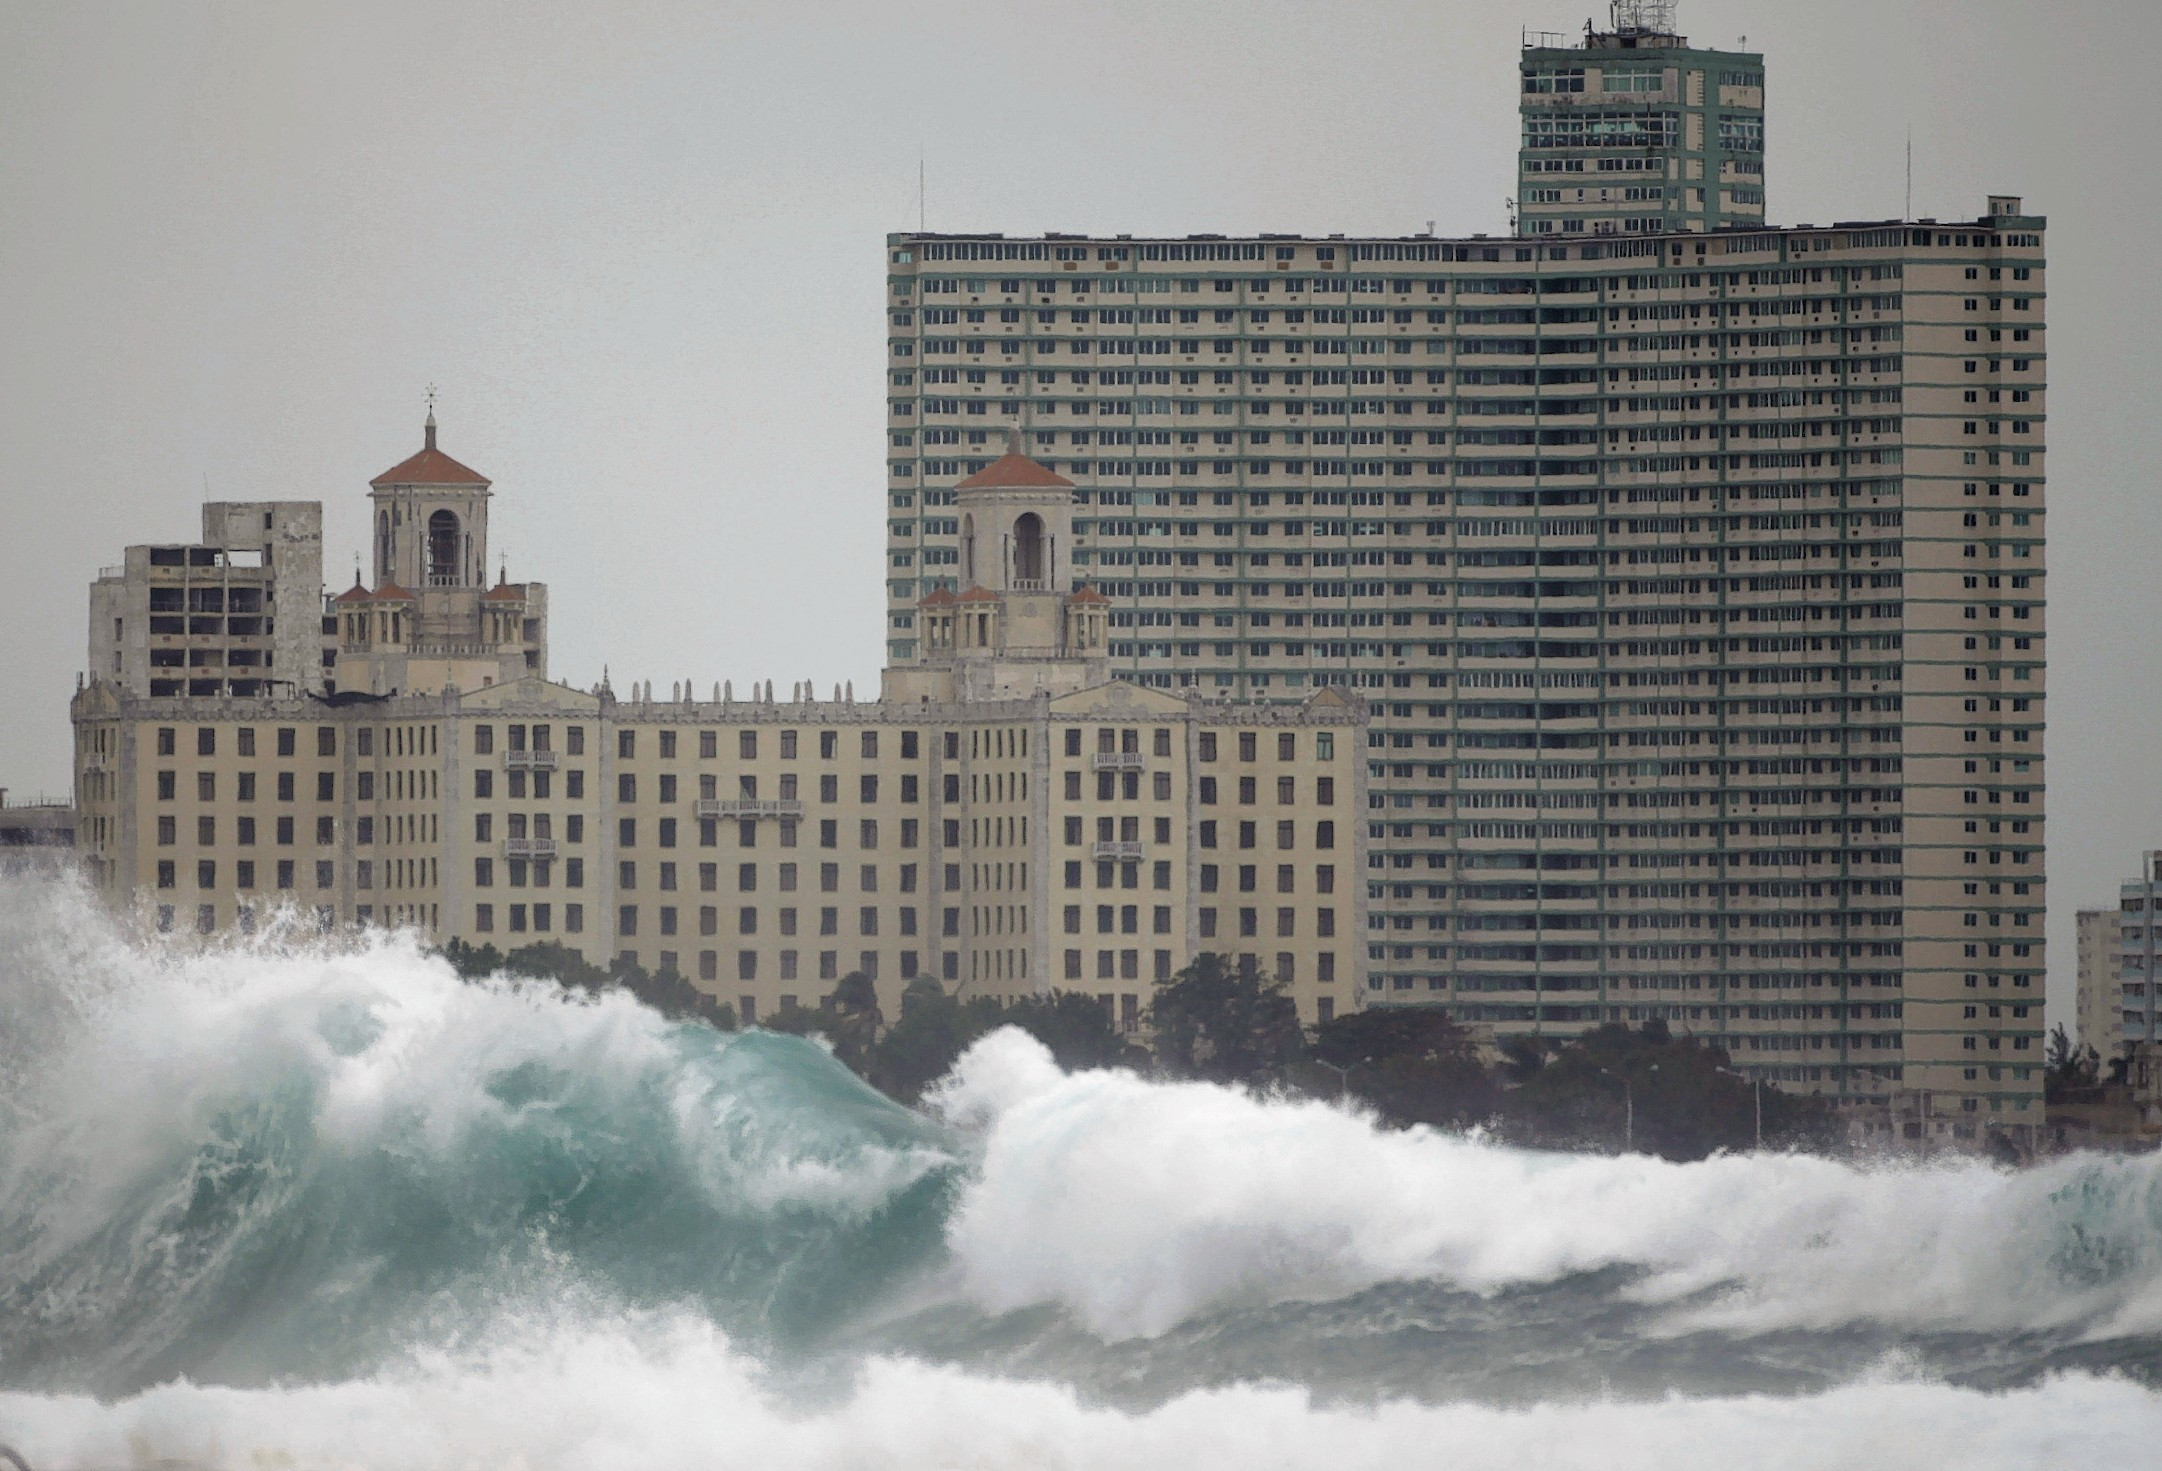 The National hotel, left, and Riviera hotel stand behind waves hitting Havana's Malecon seafront in Cuba, Monday Dec. 13, 2010.